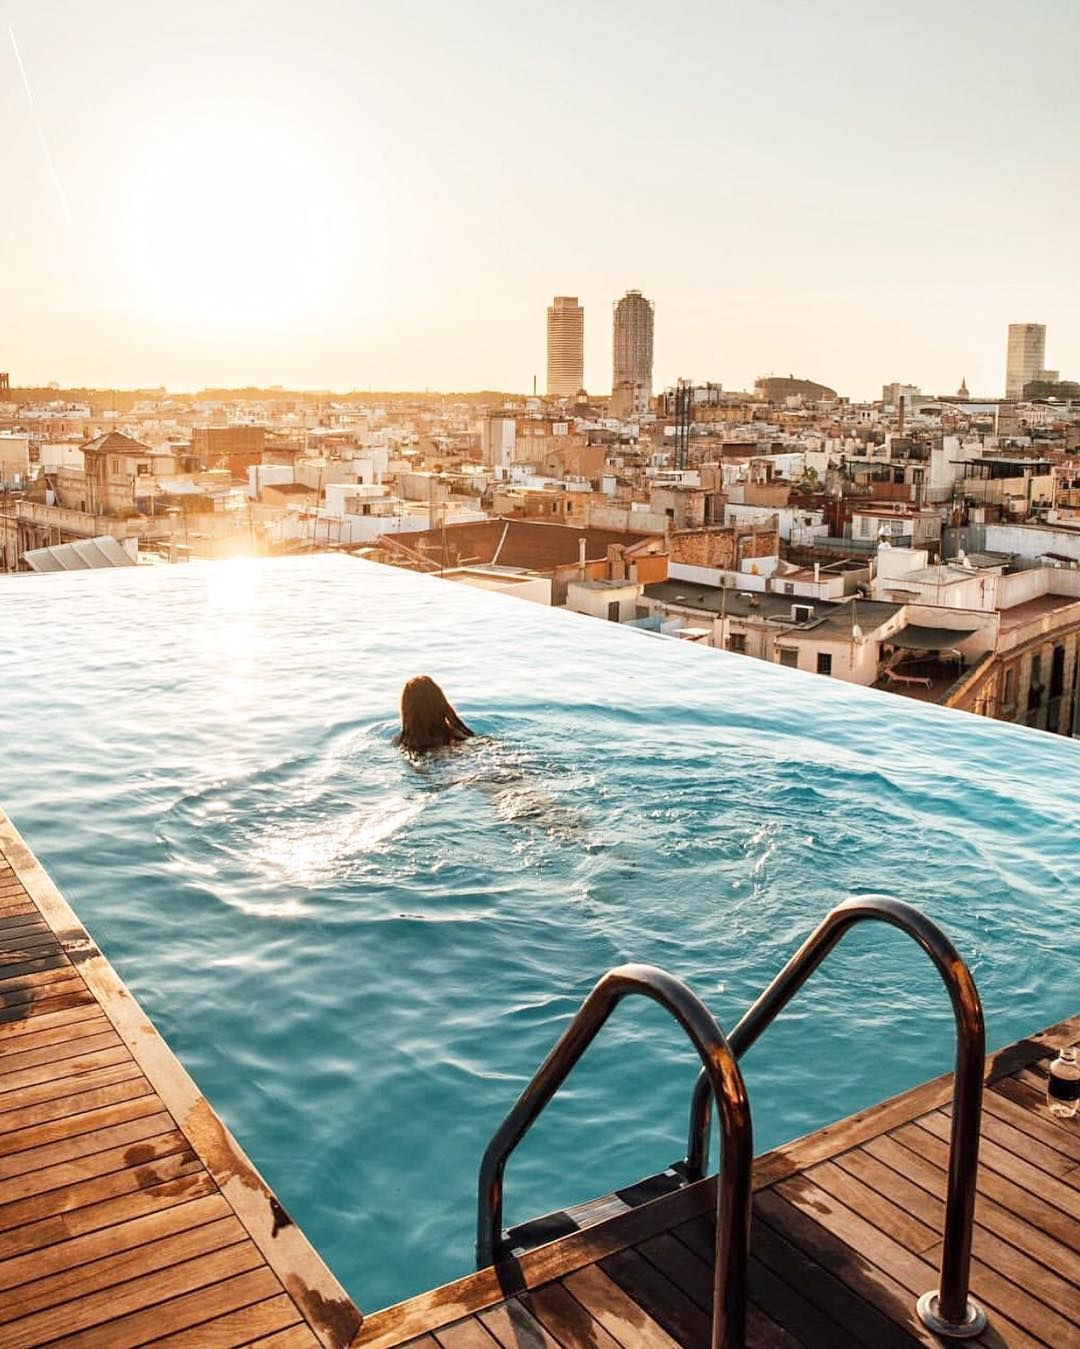 Grand Hotel Central Barcelona | Rooftop pool, Pool, Pool picture